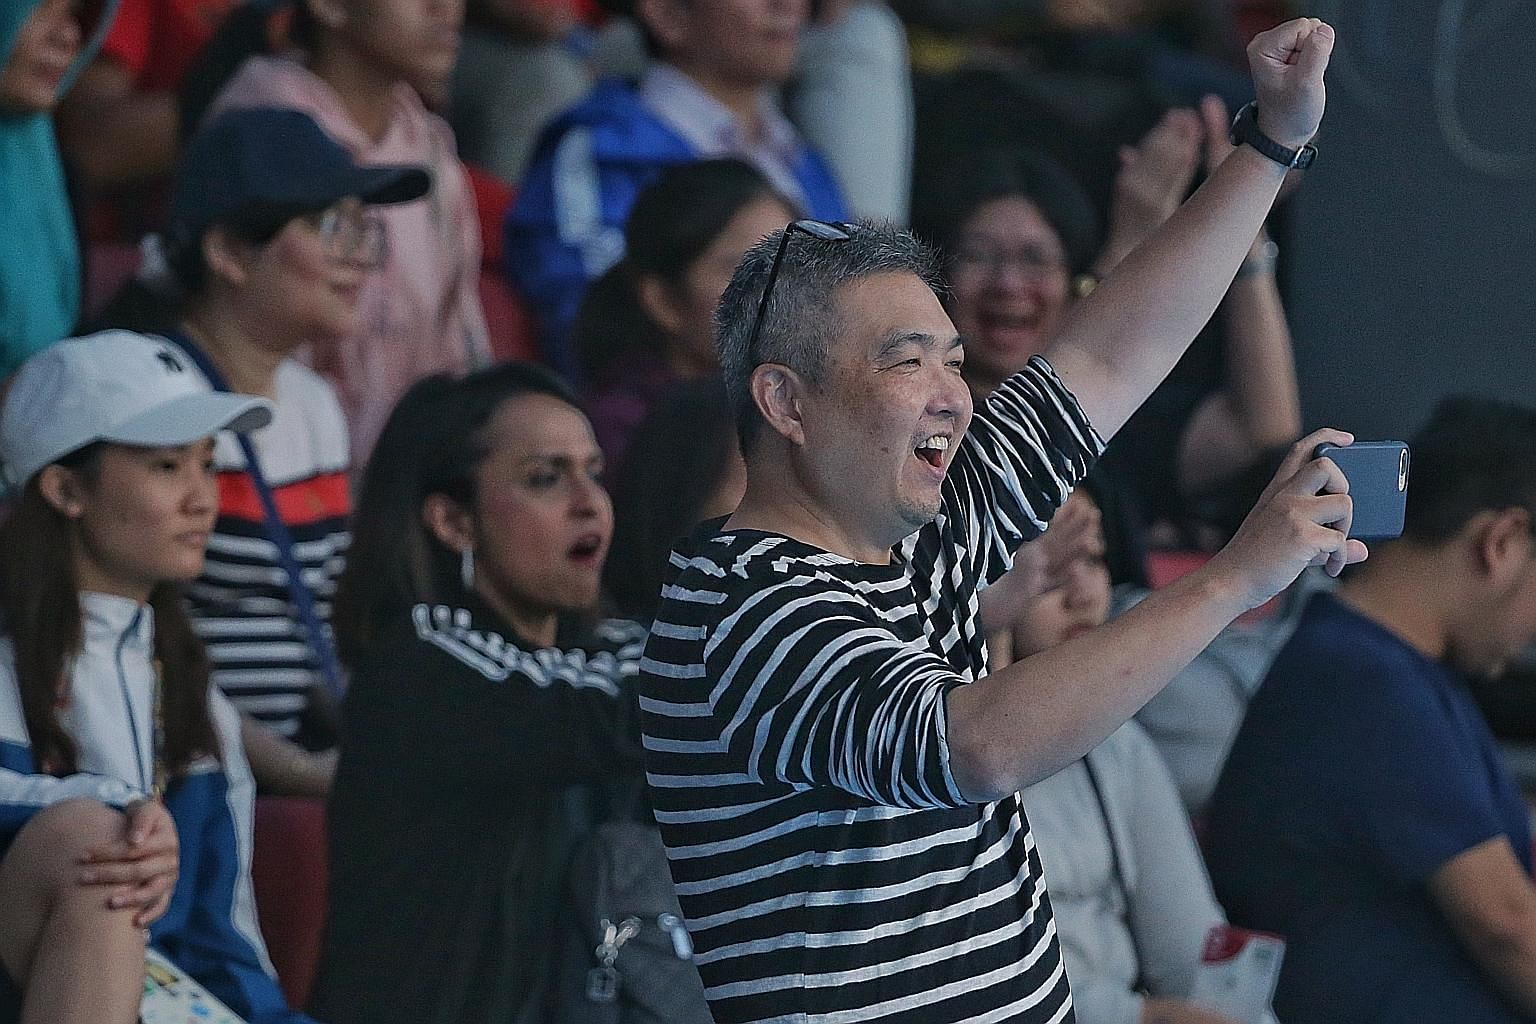 Fencer Maxine Wong's father, Philip (front) and mother Chan Bee Bee (rear, with glasses and clapping), and fencer Amita Berthier's mother Uma (behind Philip) watching them during the Singapore women's foil team's 45-14 semi-final loss to China in Jak